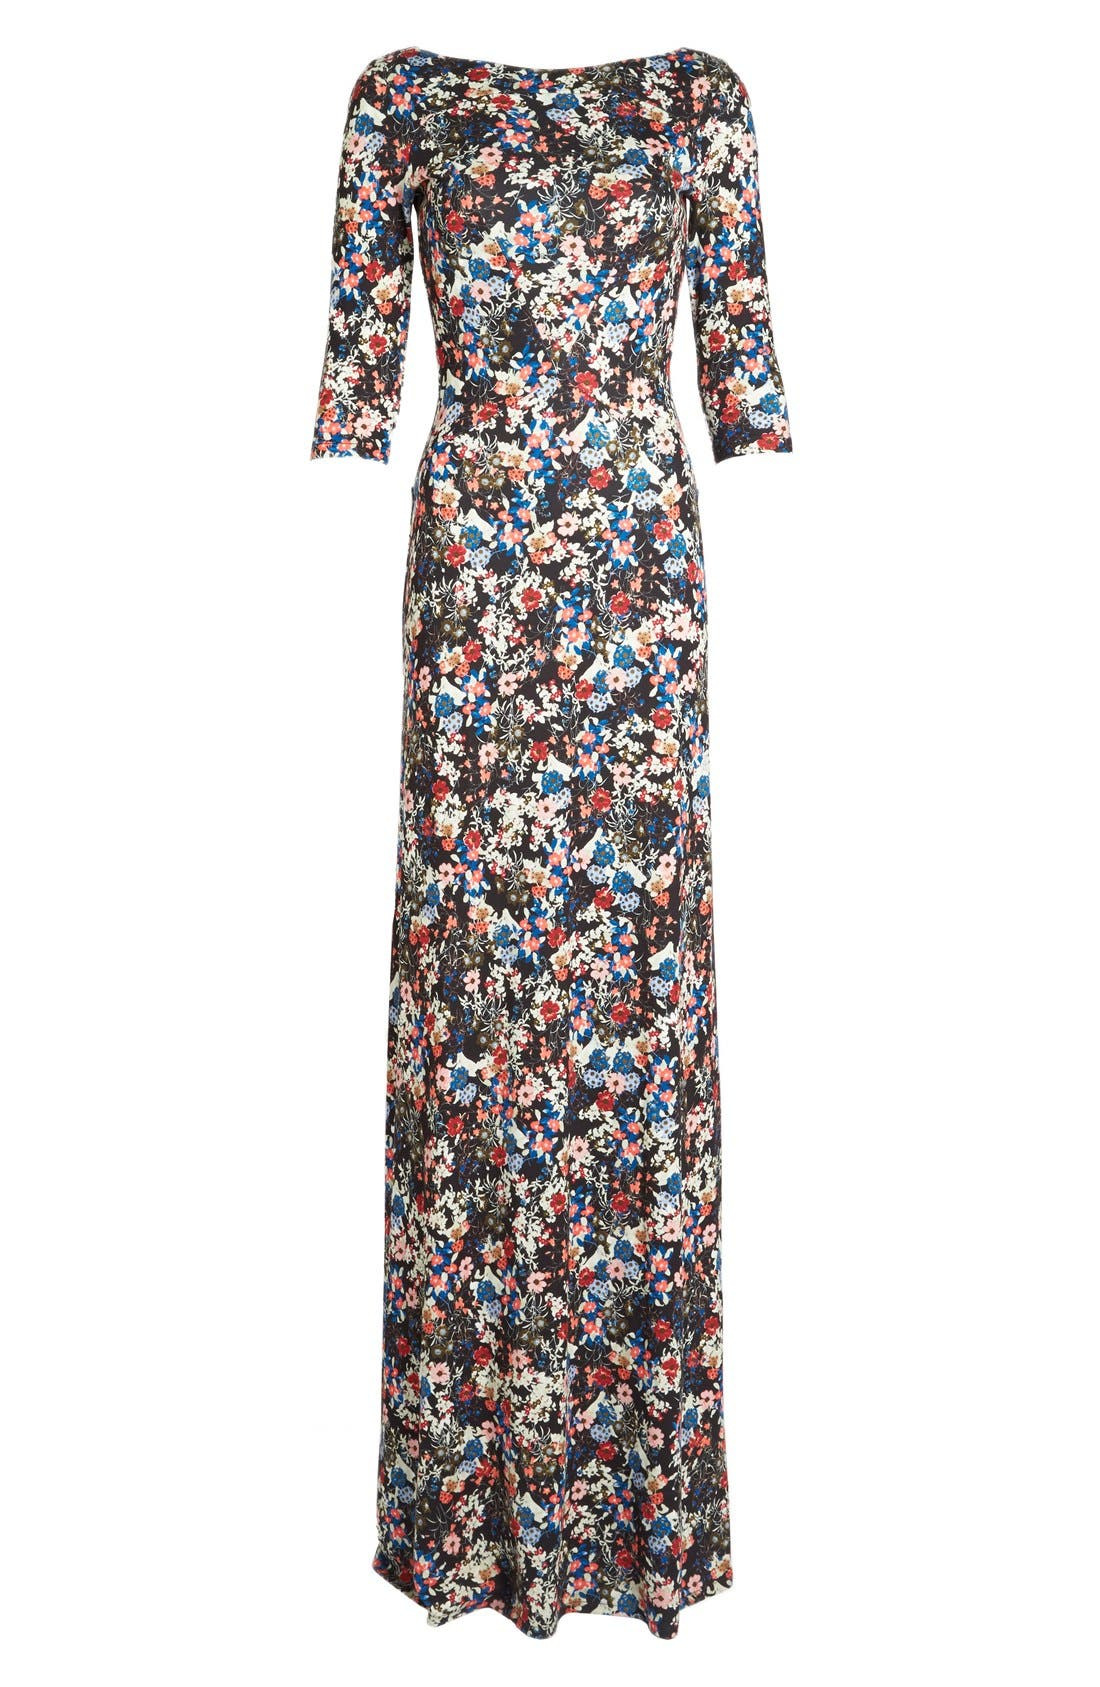 'Valentina' Floral Print JerseyGown,                             Alternate thumbnail 4, color,                             Pink/ Multi